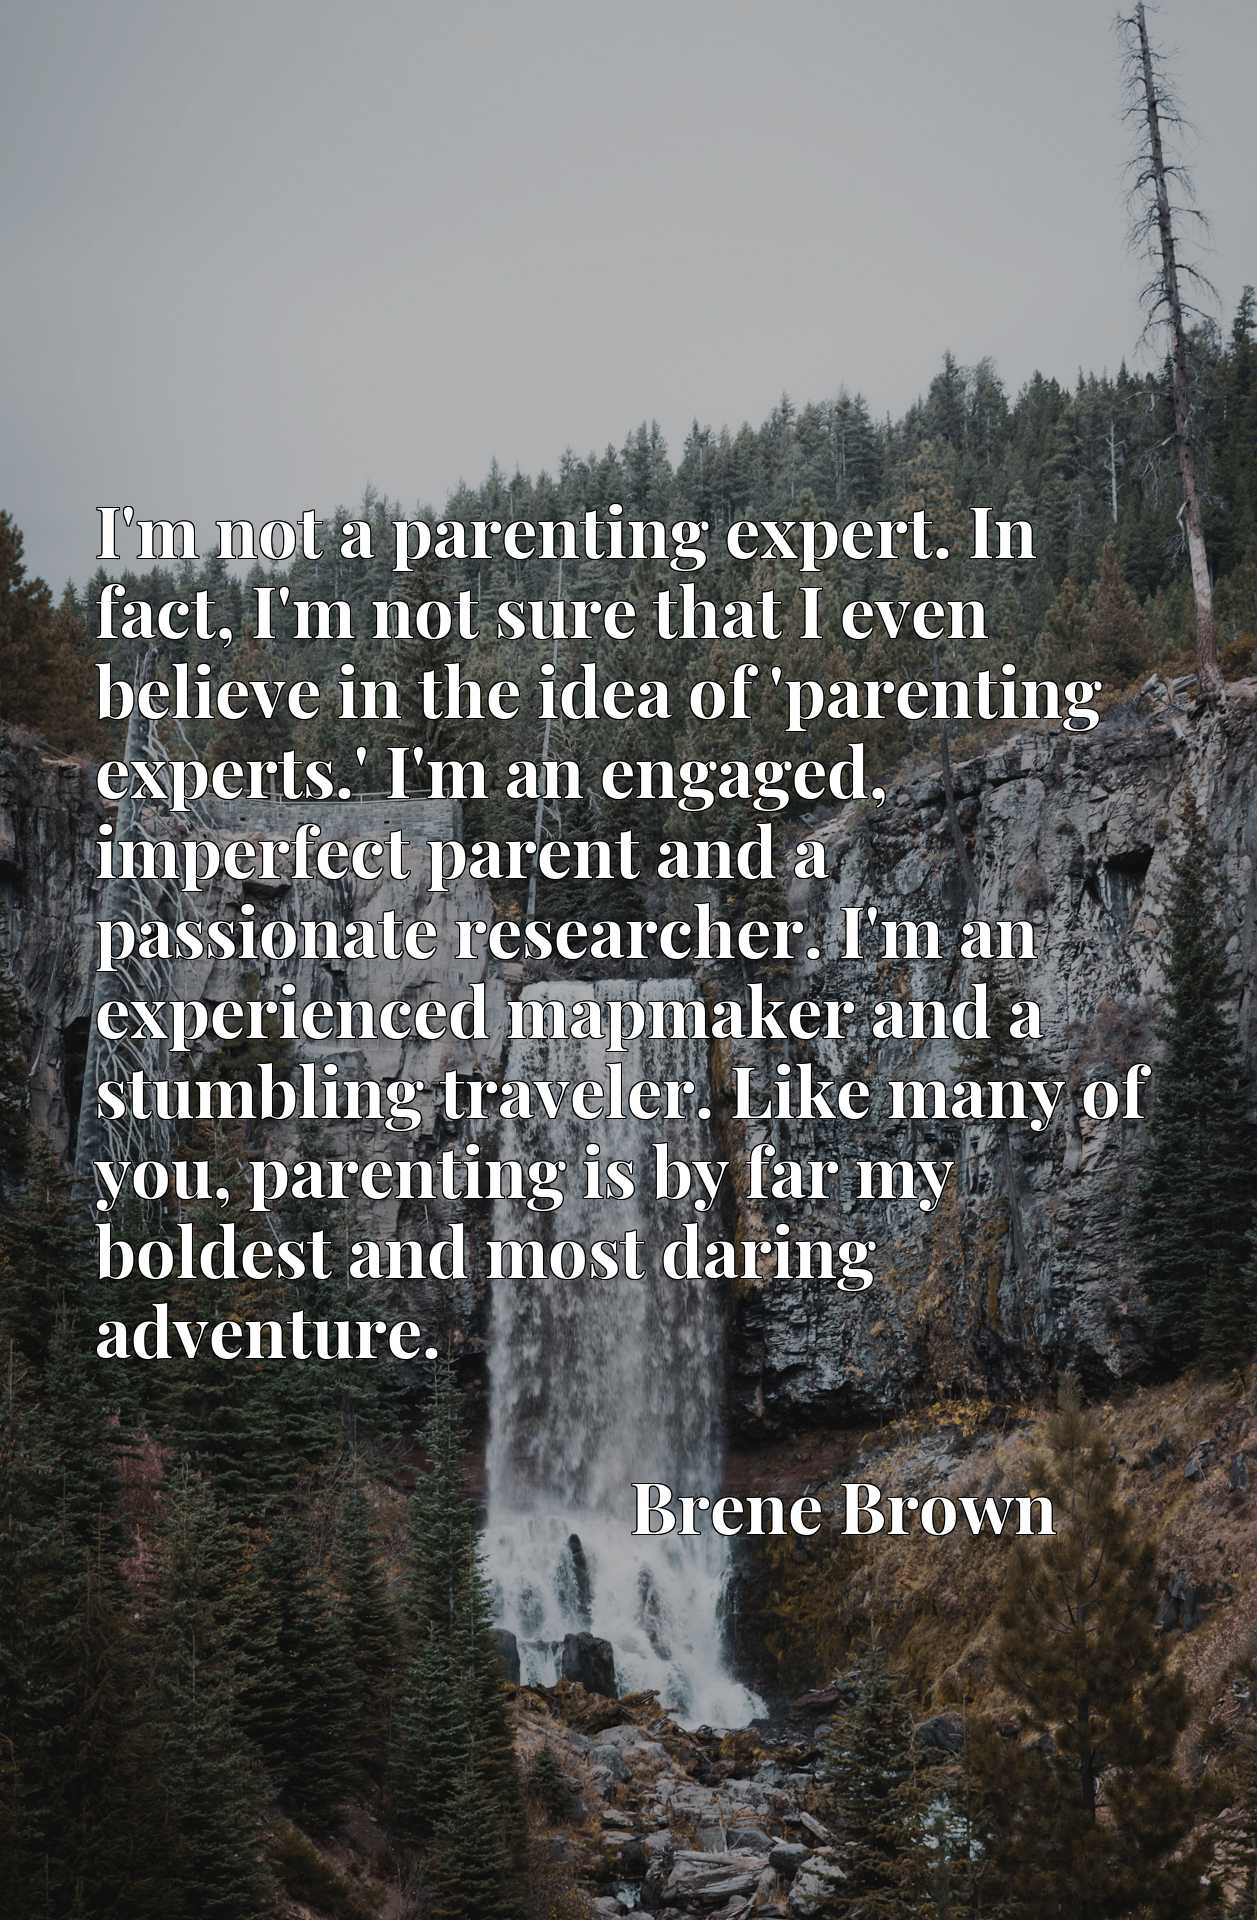 I'm not a parenting expert. In fact, I'm not sure that I even believe in the idea of 'parenting experts.' I'm an engaged, imperfect parent and a passionate researcher. I'm an experienced mapmaker and a stumbling traveler. Like many of you, parenting is by far my boldest and most daring adventure.